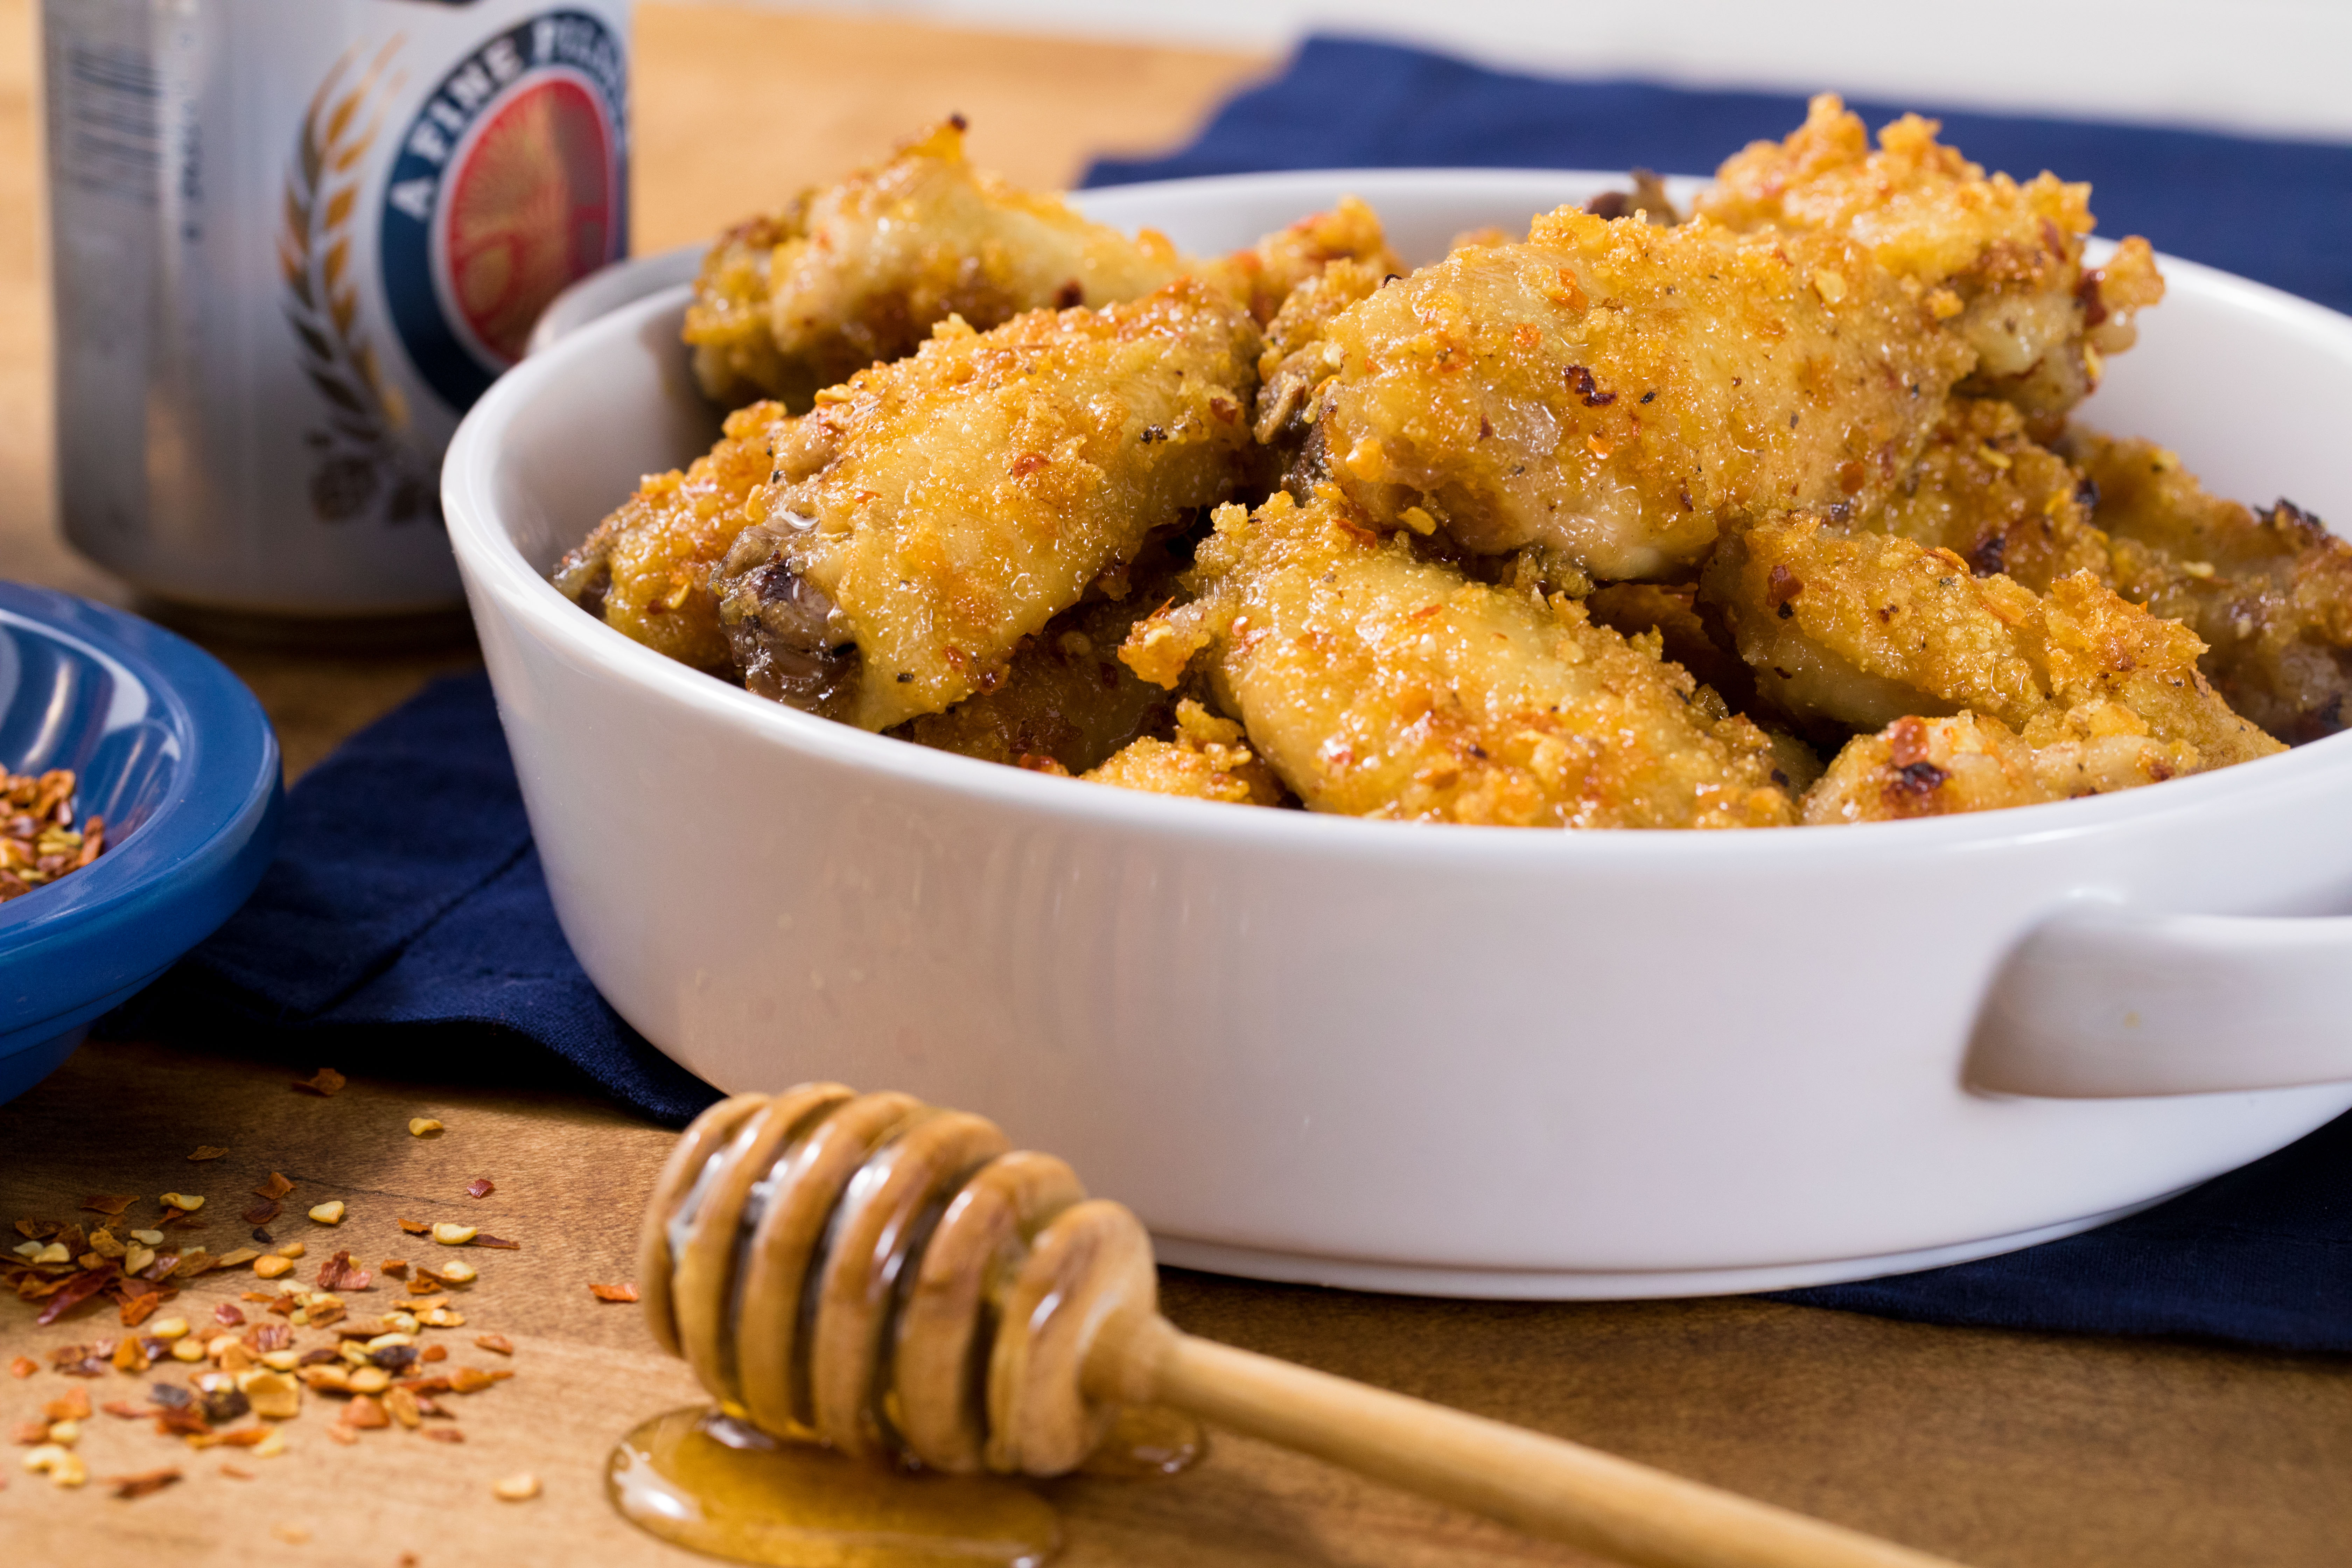 Super Crunch Oven Cooked Honey Dipped Wings